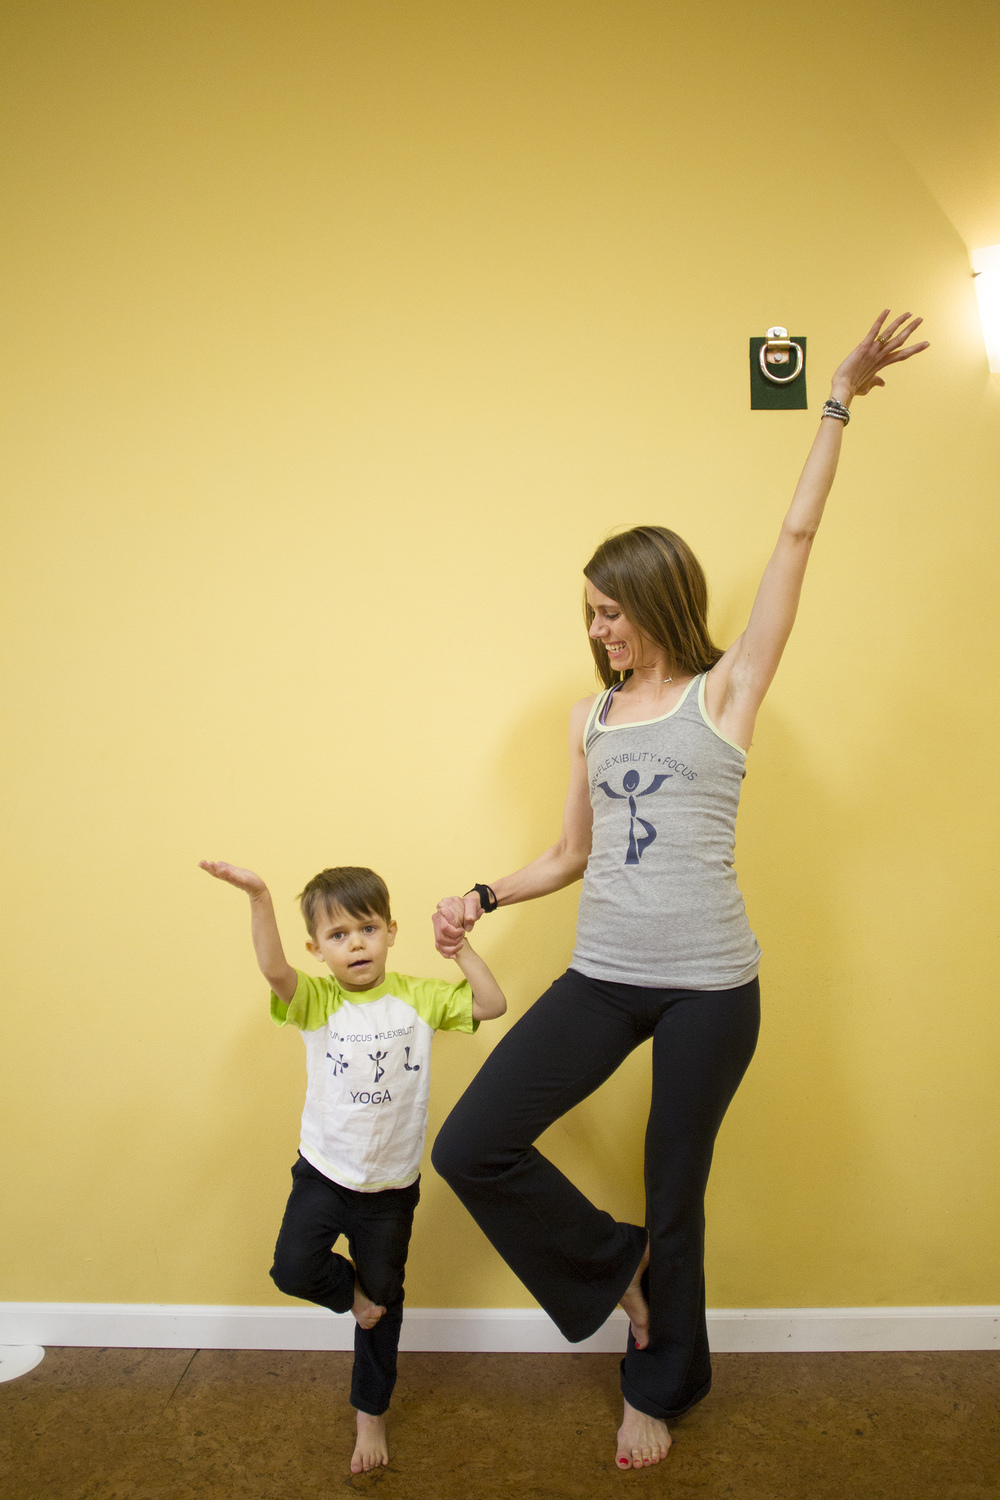 Dana Robinson poses with her son, Tymen, at Sweet Feet Yoga.